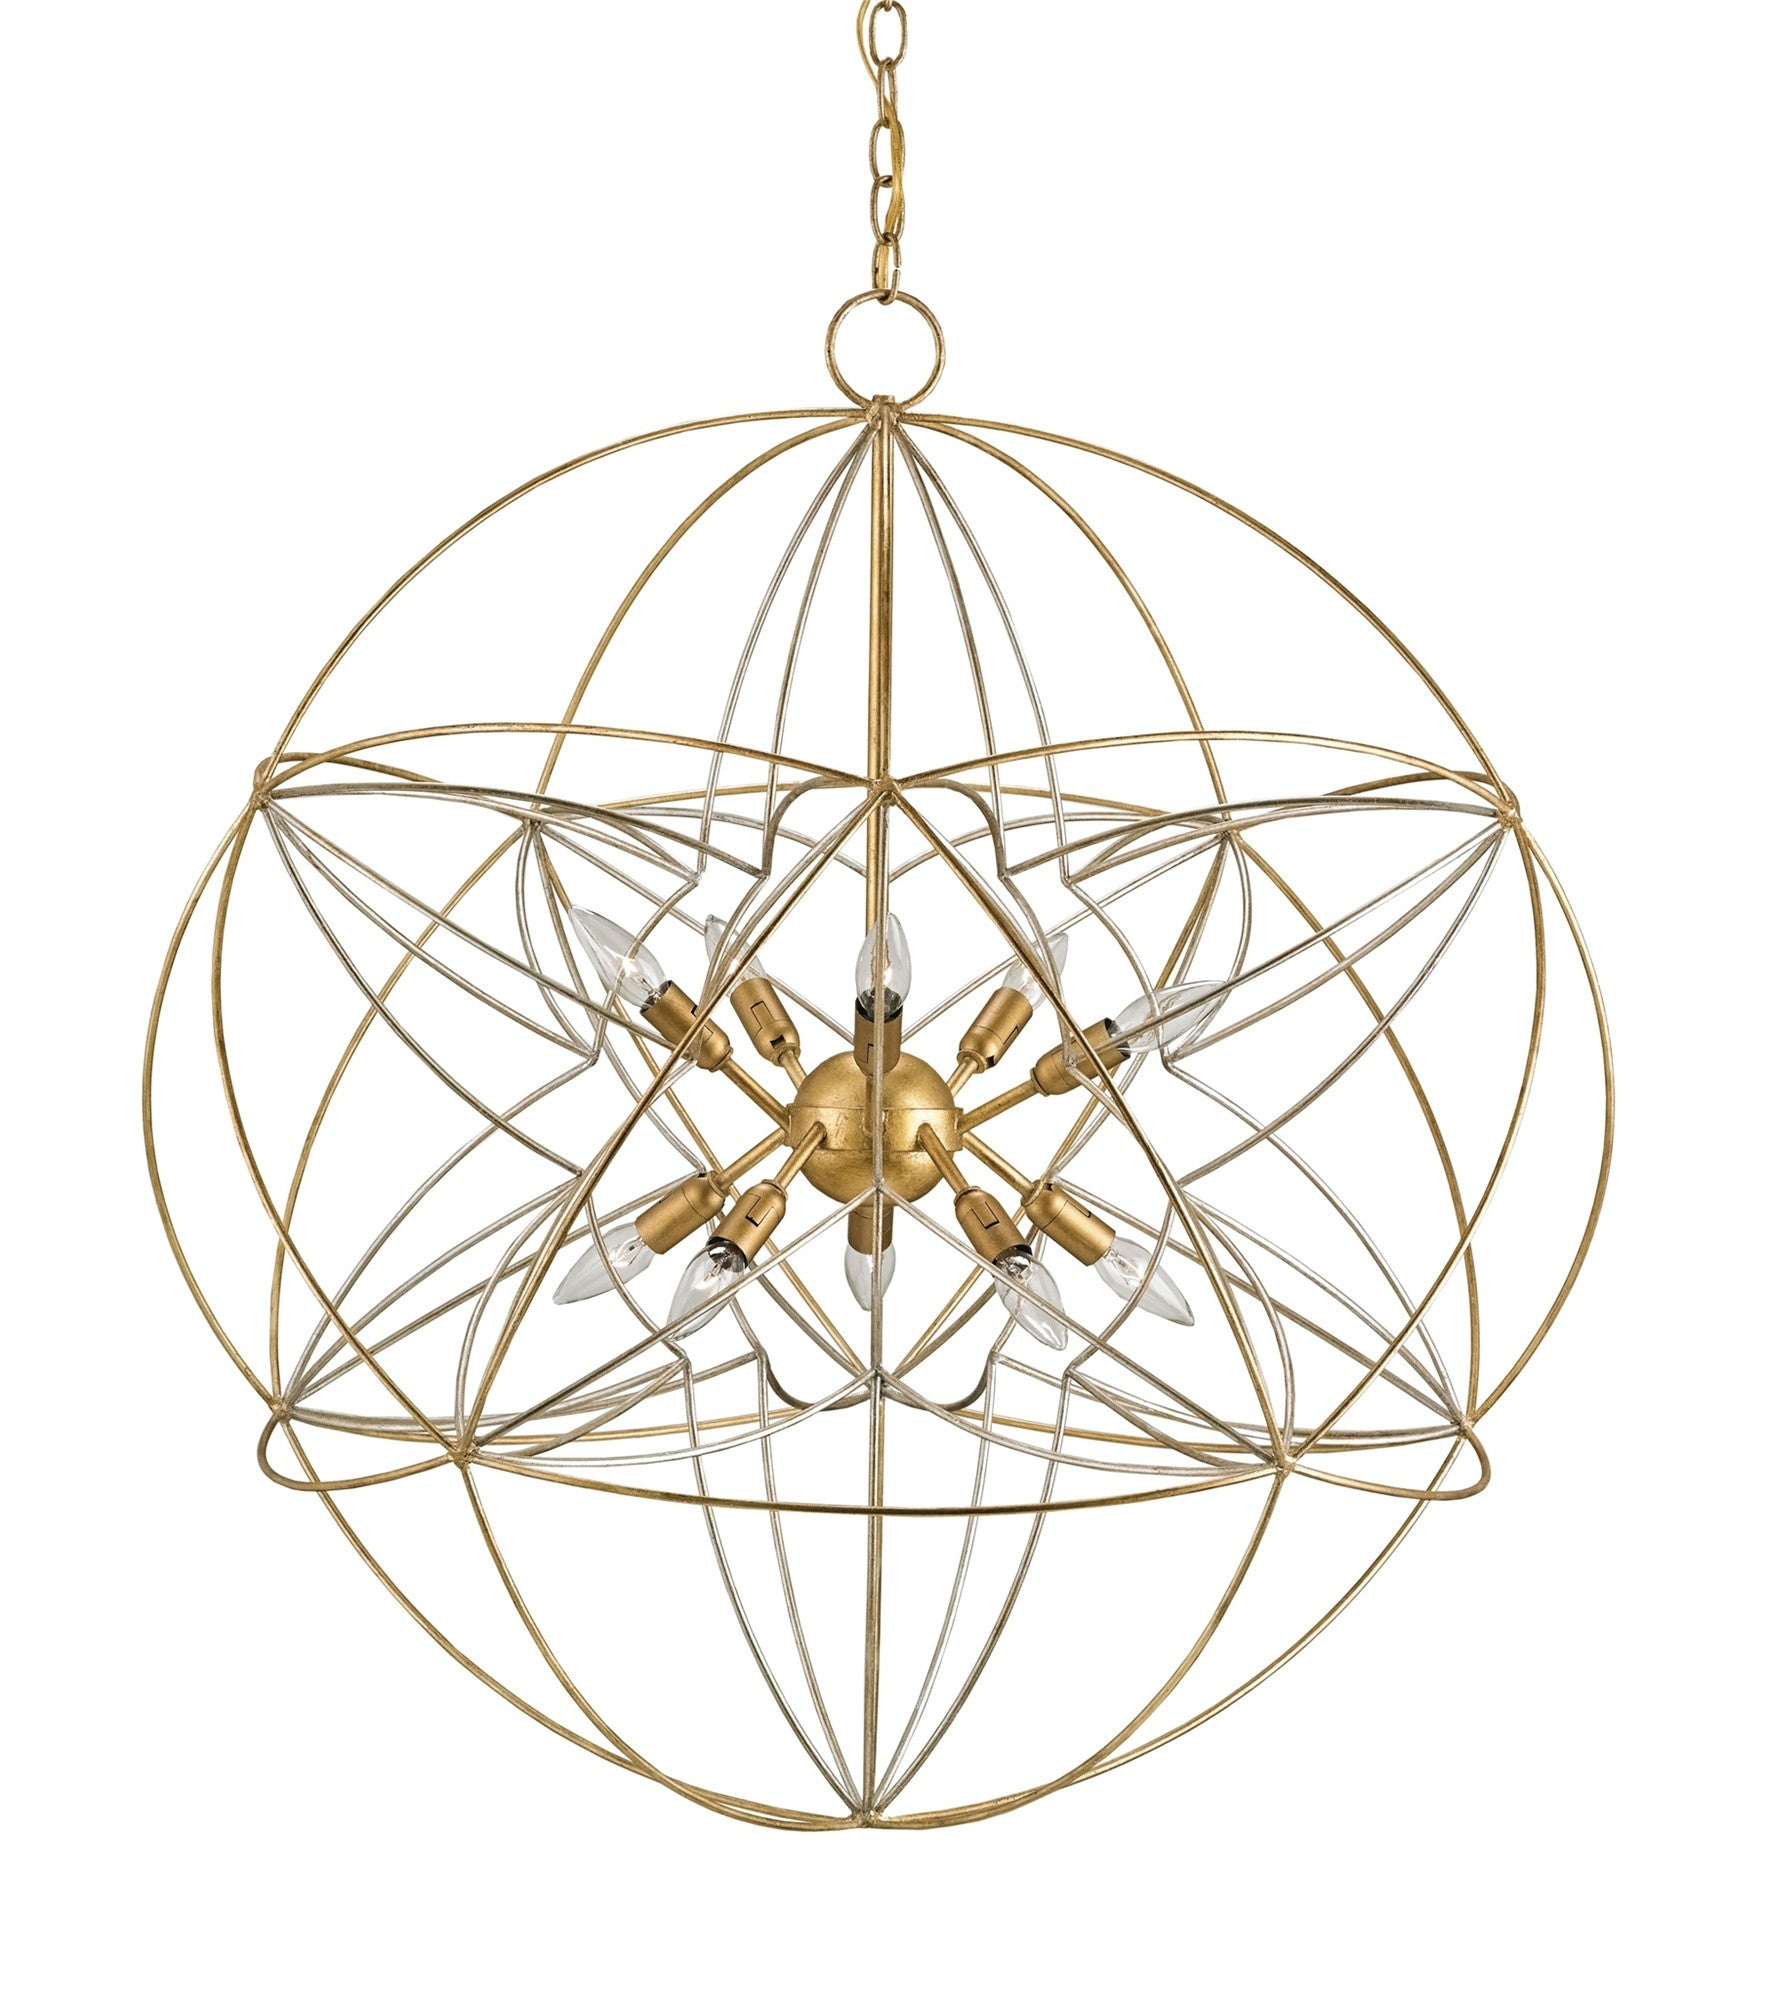 Currey And Company Orb Chandelier: Zenda Orb Chandelier Design By Currey & Company